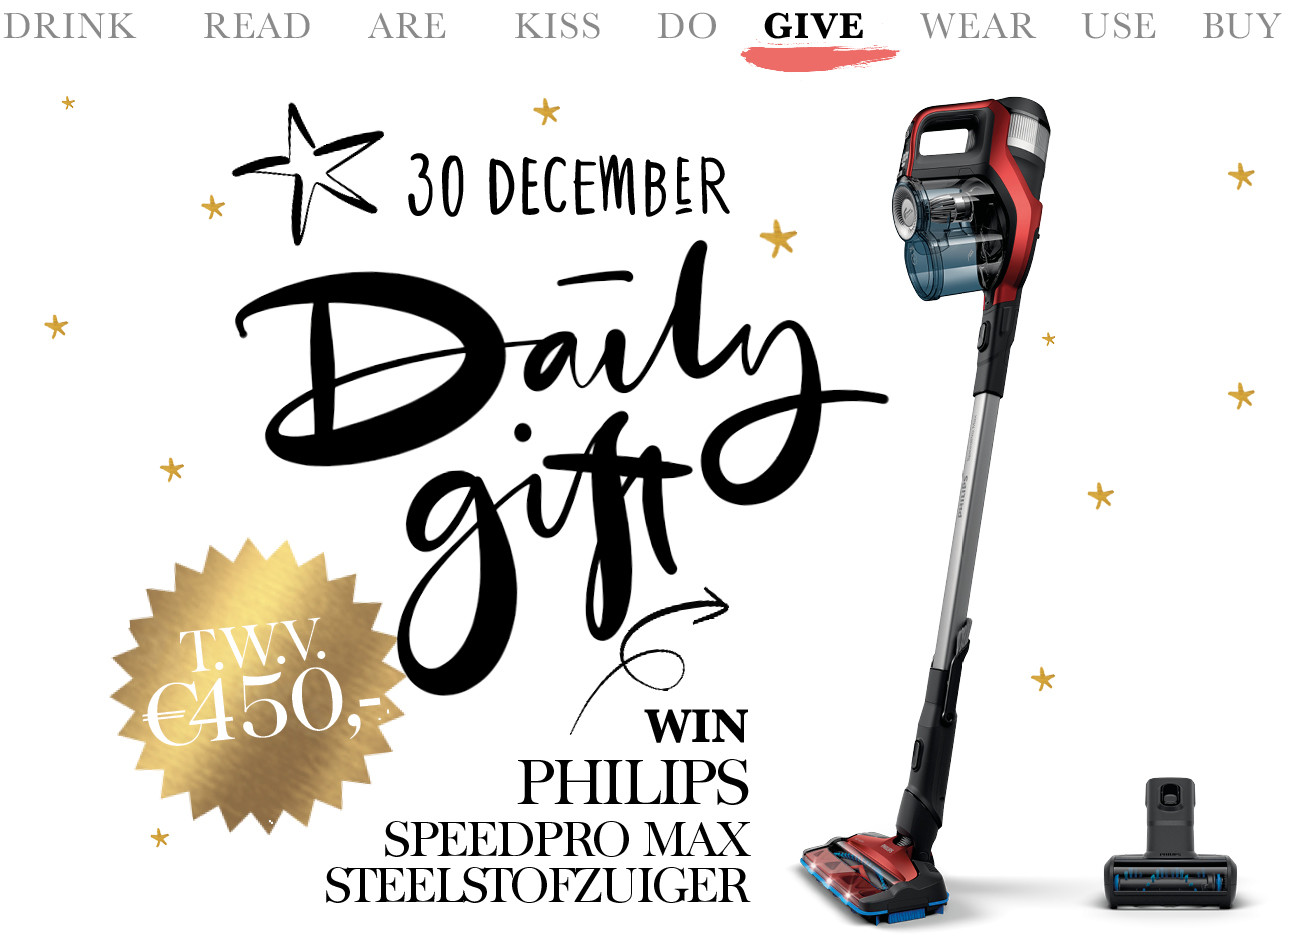 today we give philips speedpro max